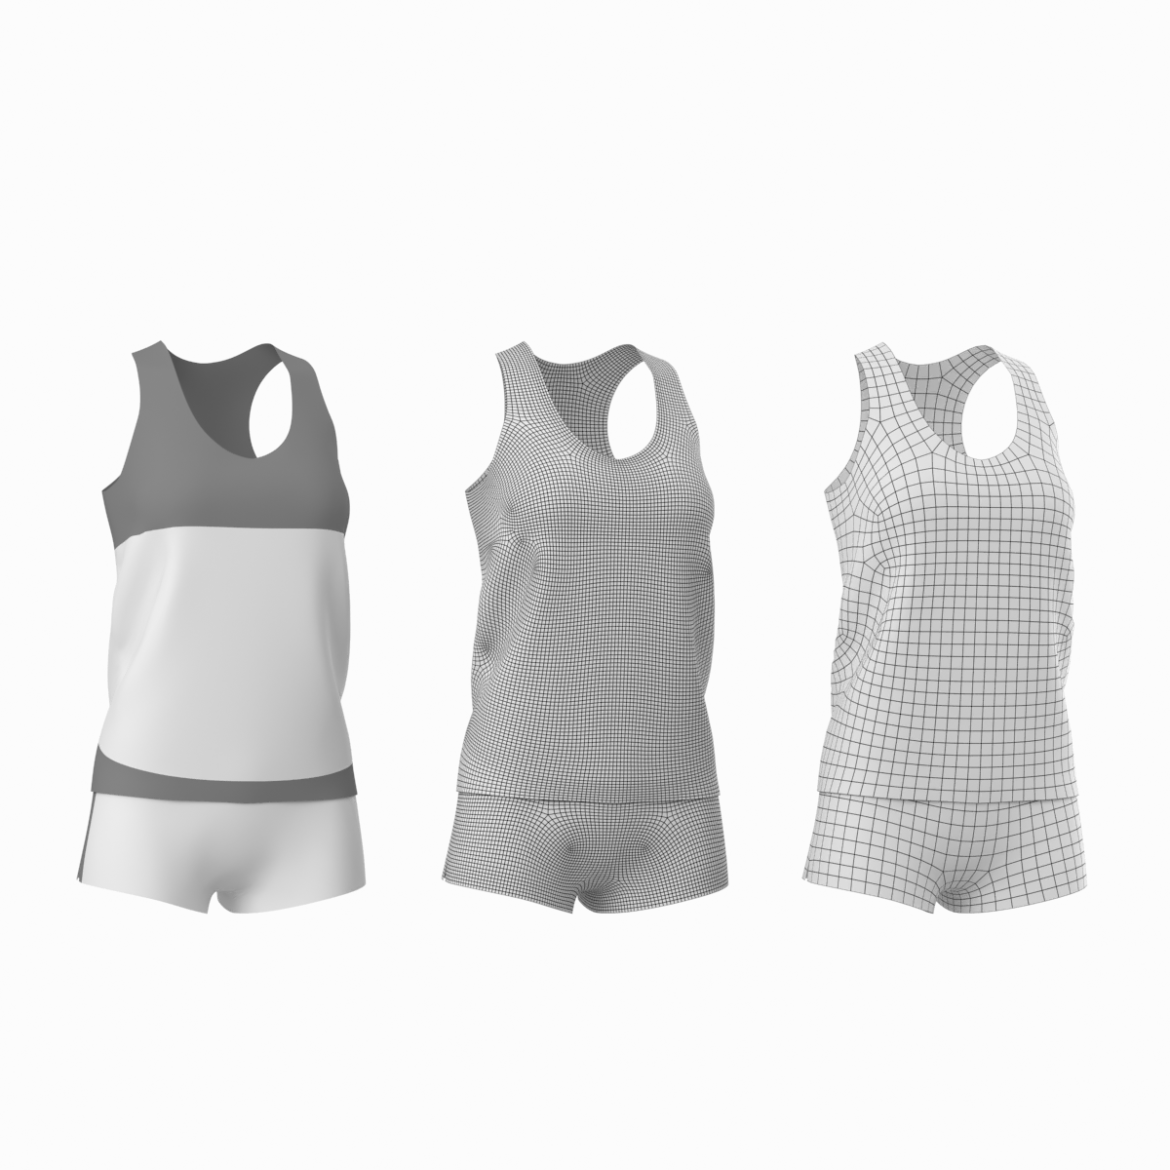 woman sportswear 03 base mesh design kit 3d model 3ds max fbx blend c4d dae ma mb  obj ztl 321868